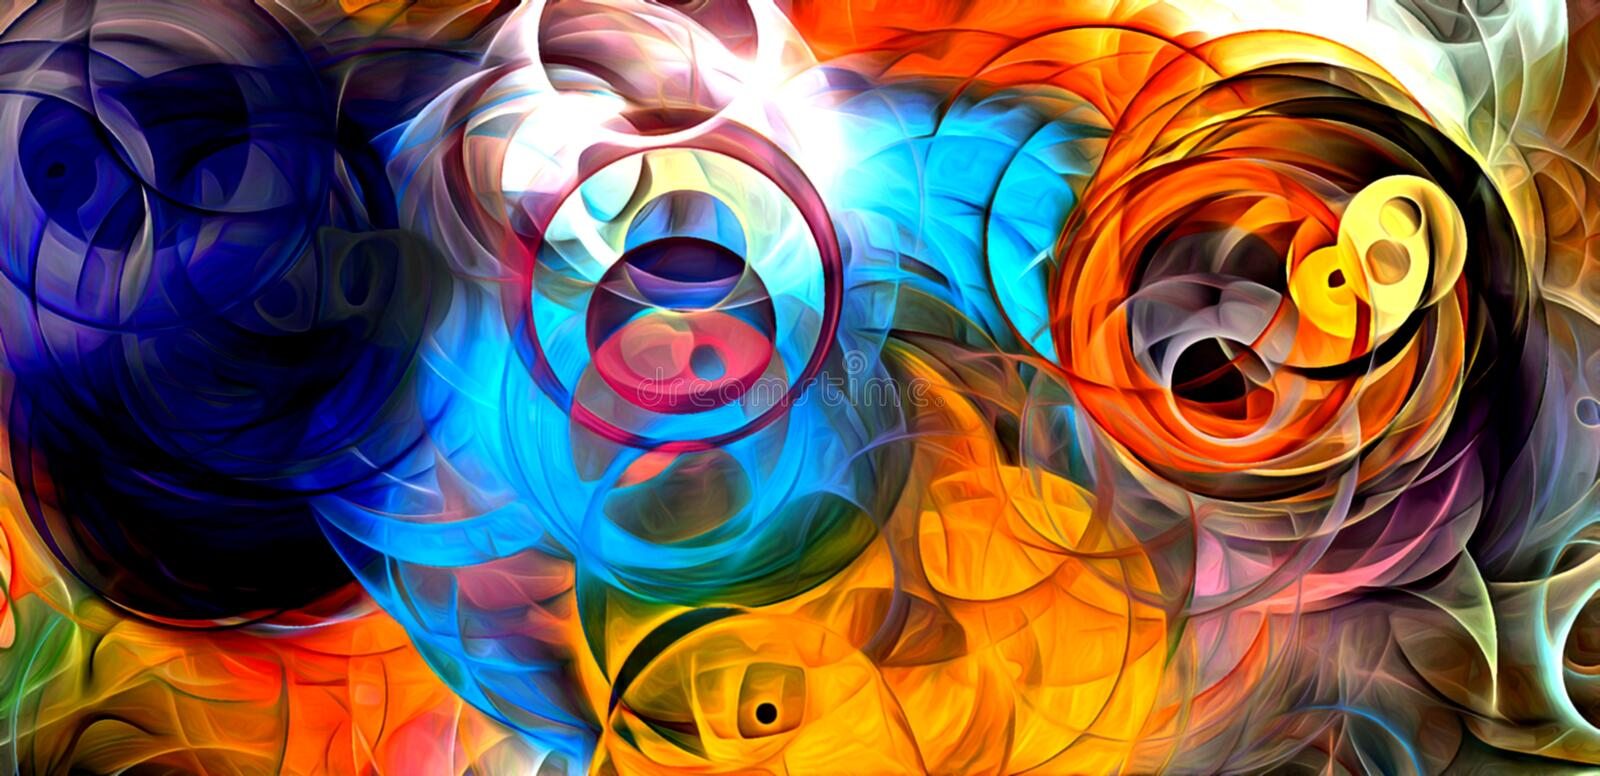 Abstract psychedelic background colored fractal hotspots arranged circles and spirals of different sizes Digital graphic design royalty free illustration